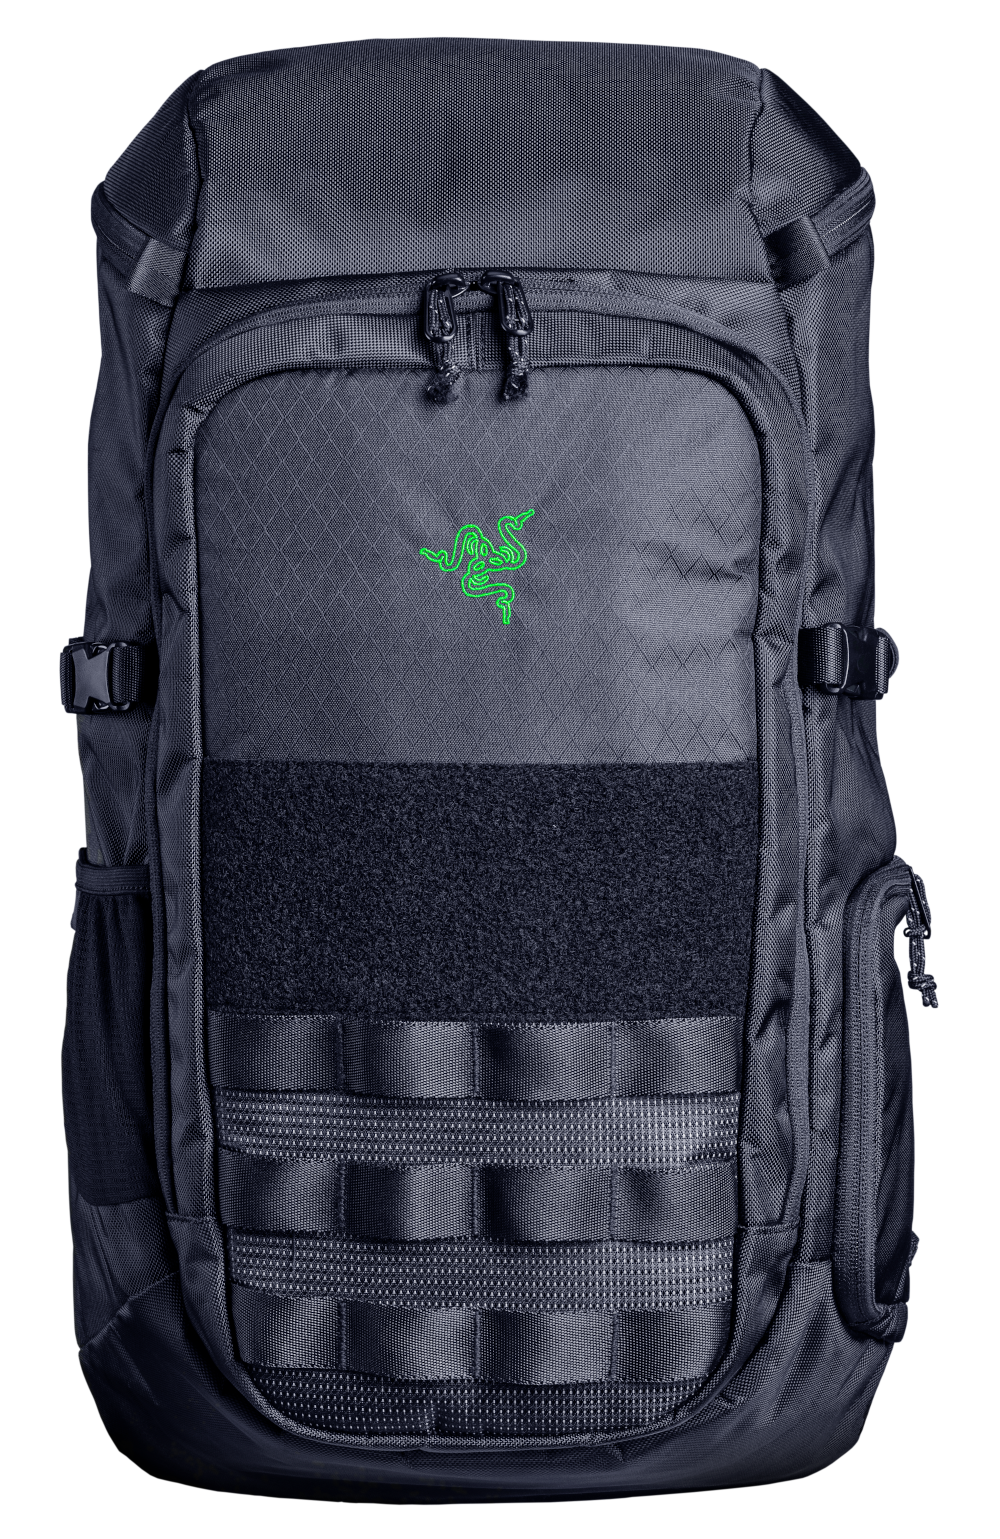 Razer Tactical Backpack V2